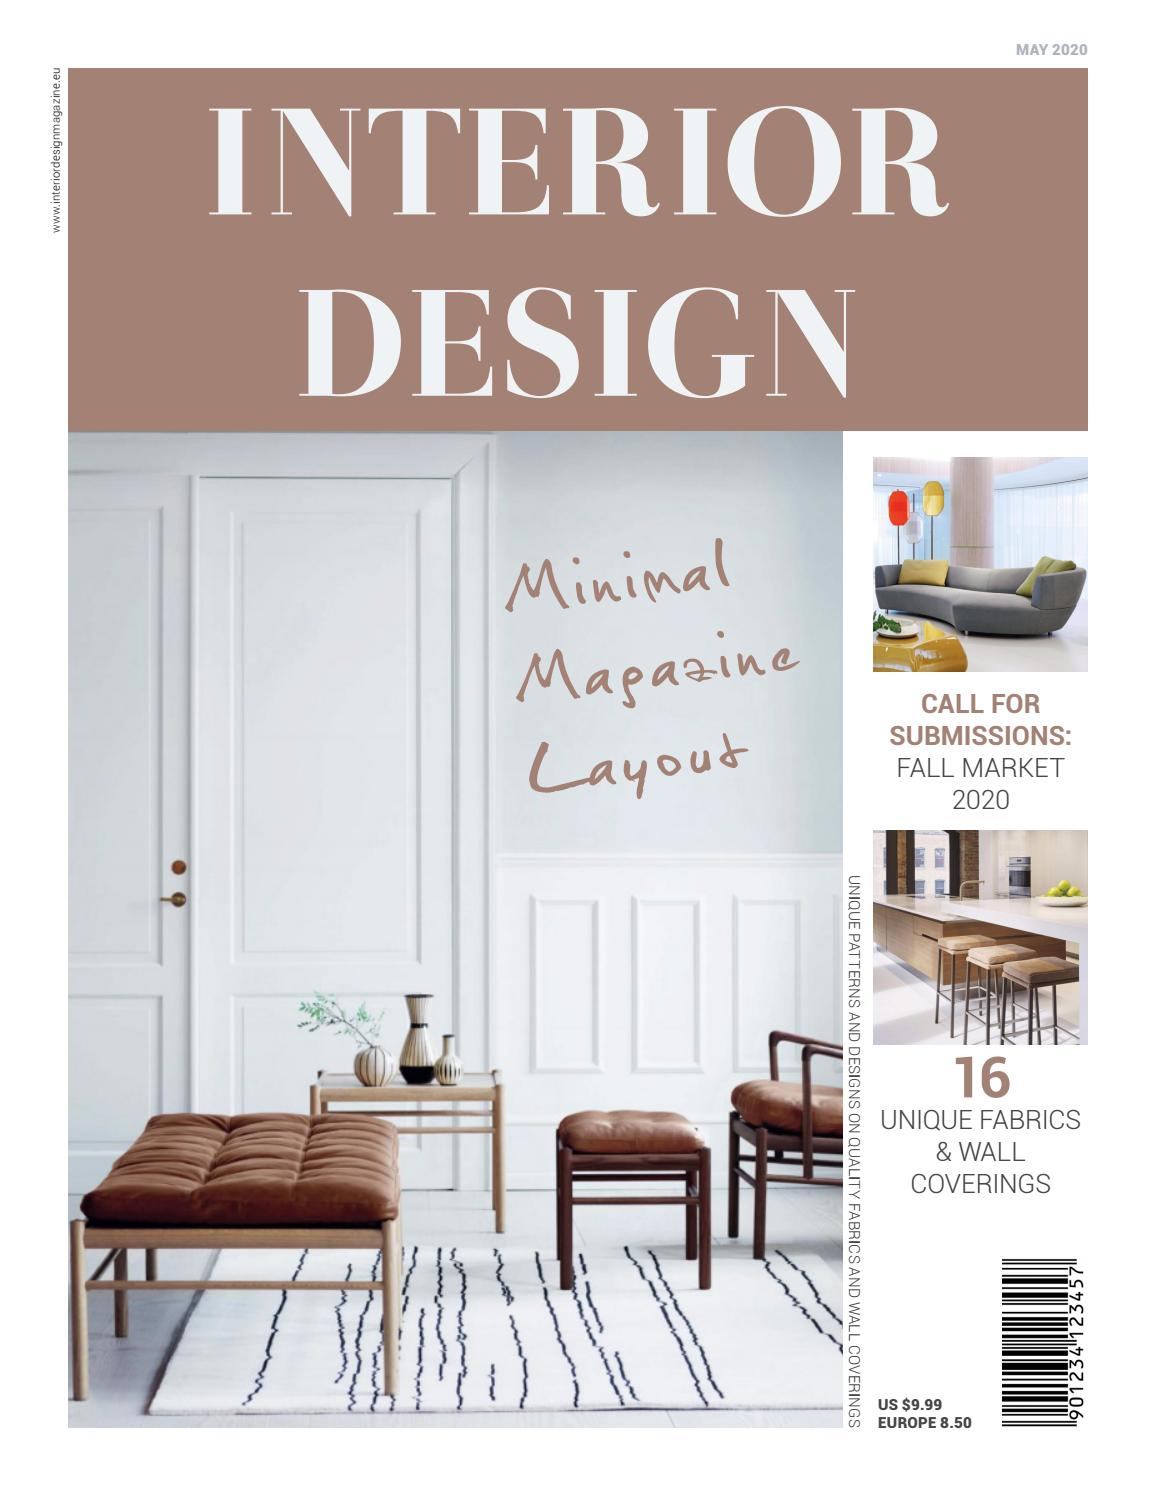 Interior Design Magazine Layout By Refresh Studio Issuu